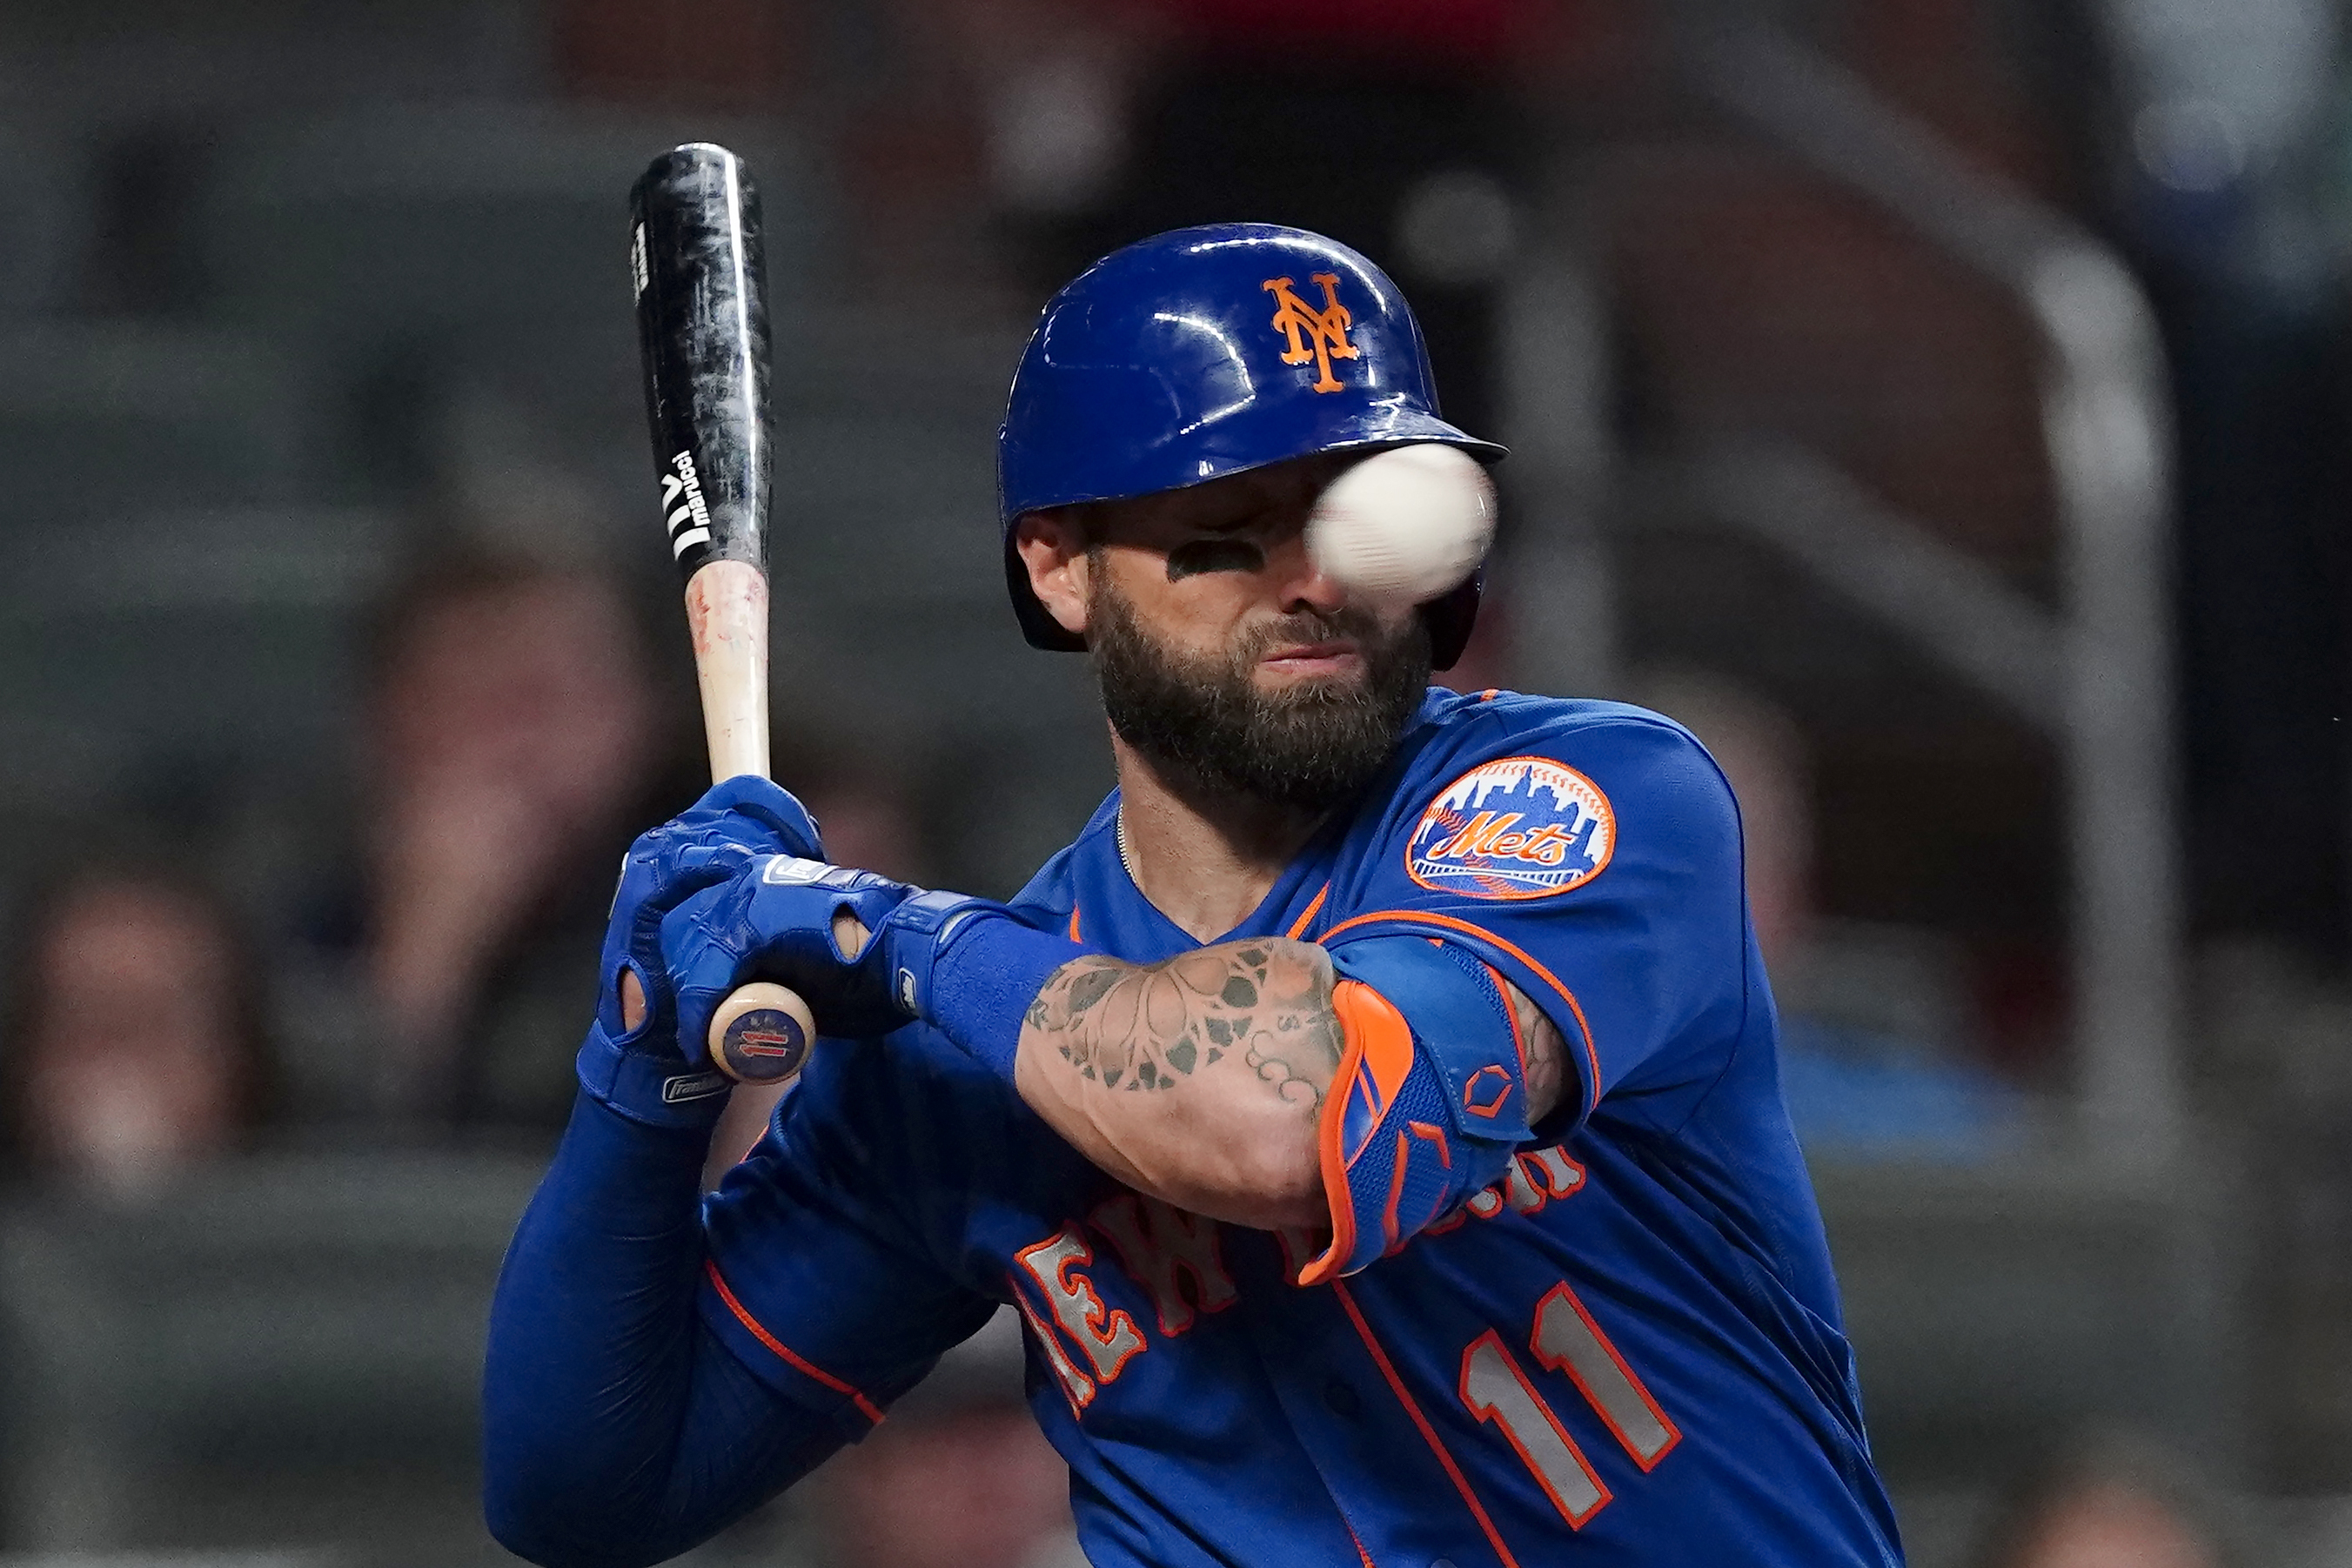 The Mets' Kevin Pillar is hit in the face with a pitch from Braves pitcher Jacob Webb in the seventh inning of Monday's game.